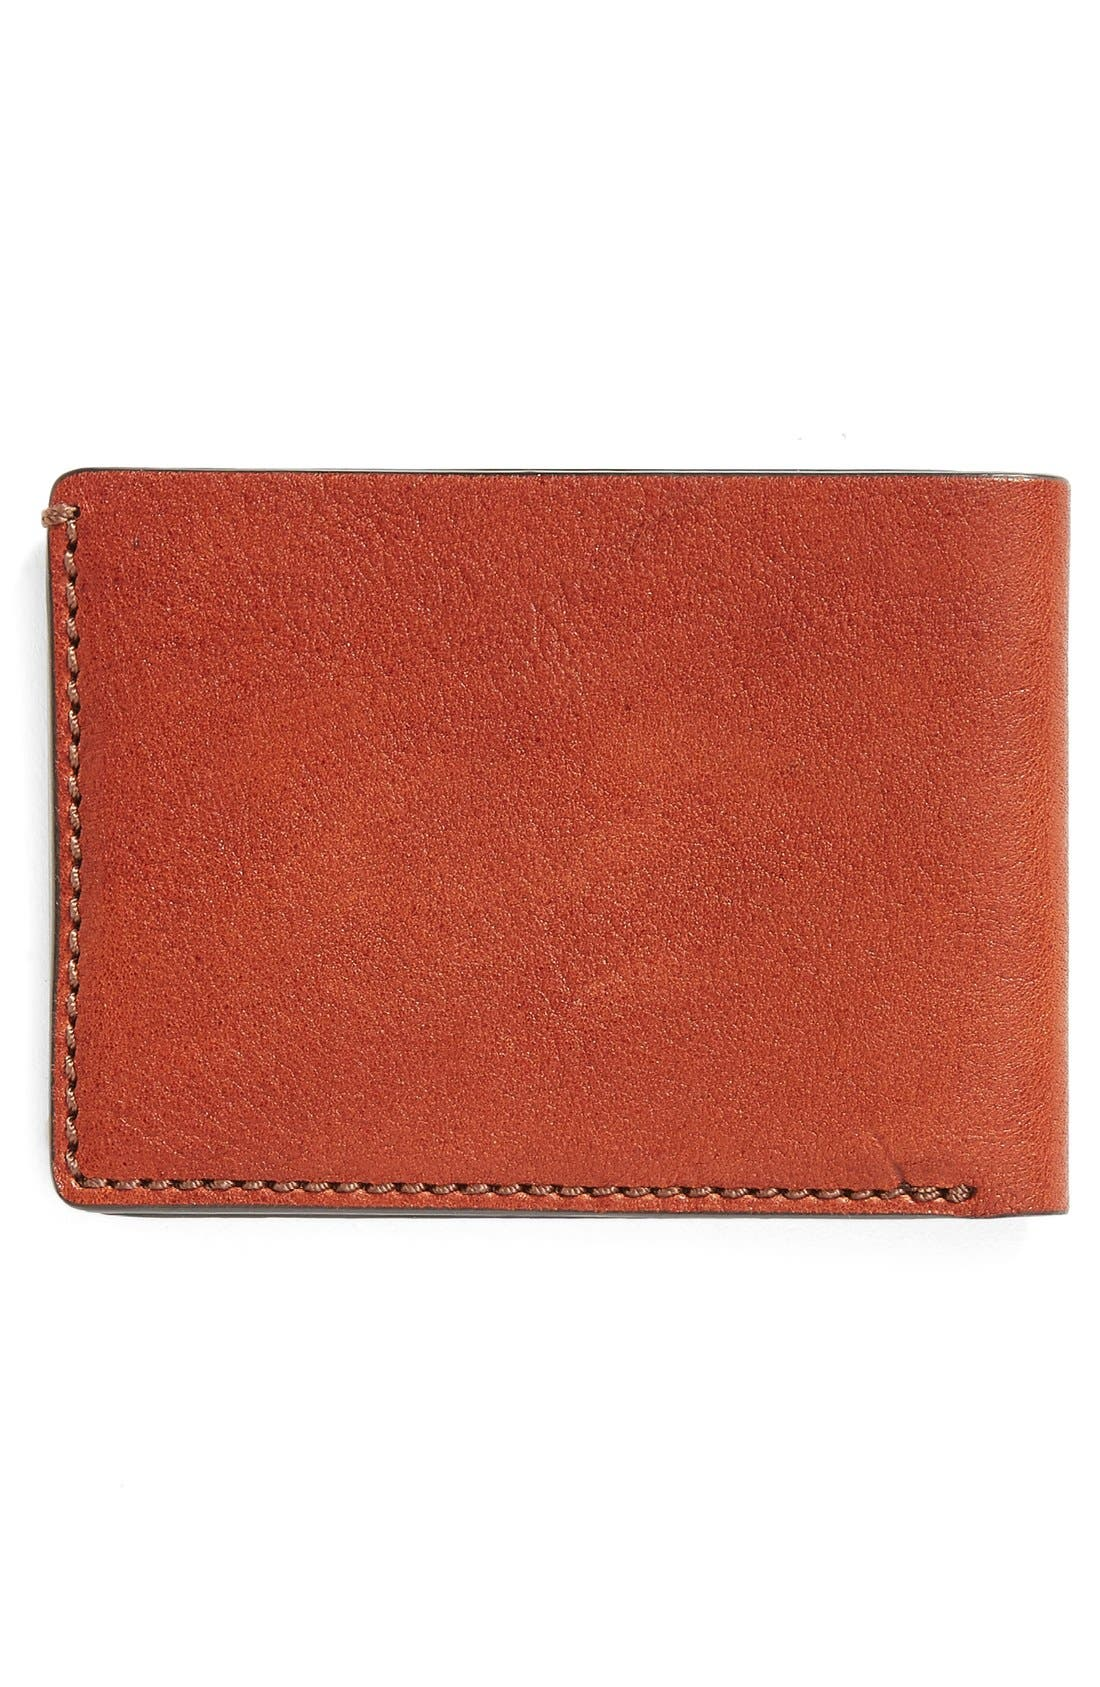 Leather Bifold Wallet,                             Alternate thumbnail 3, color,                             Cognac